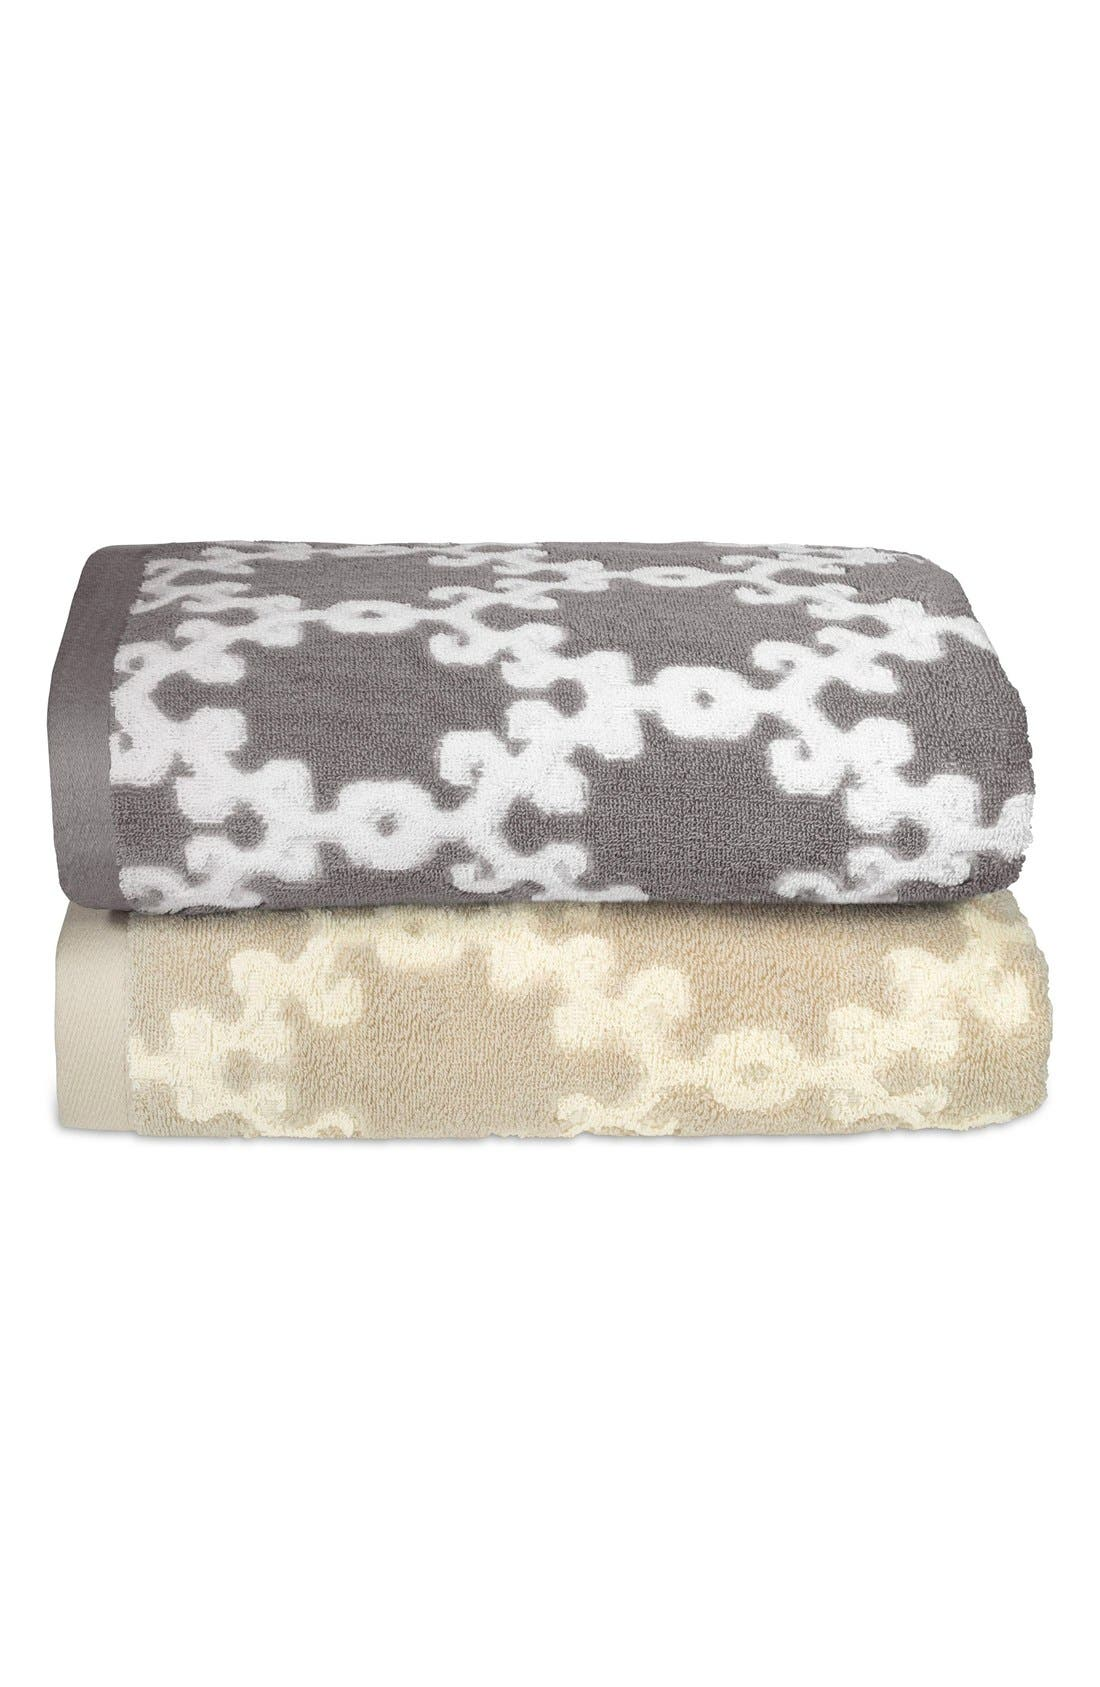 JOHN ROBSHAW 'Totem' Turkish Cotton Bath Towel